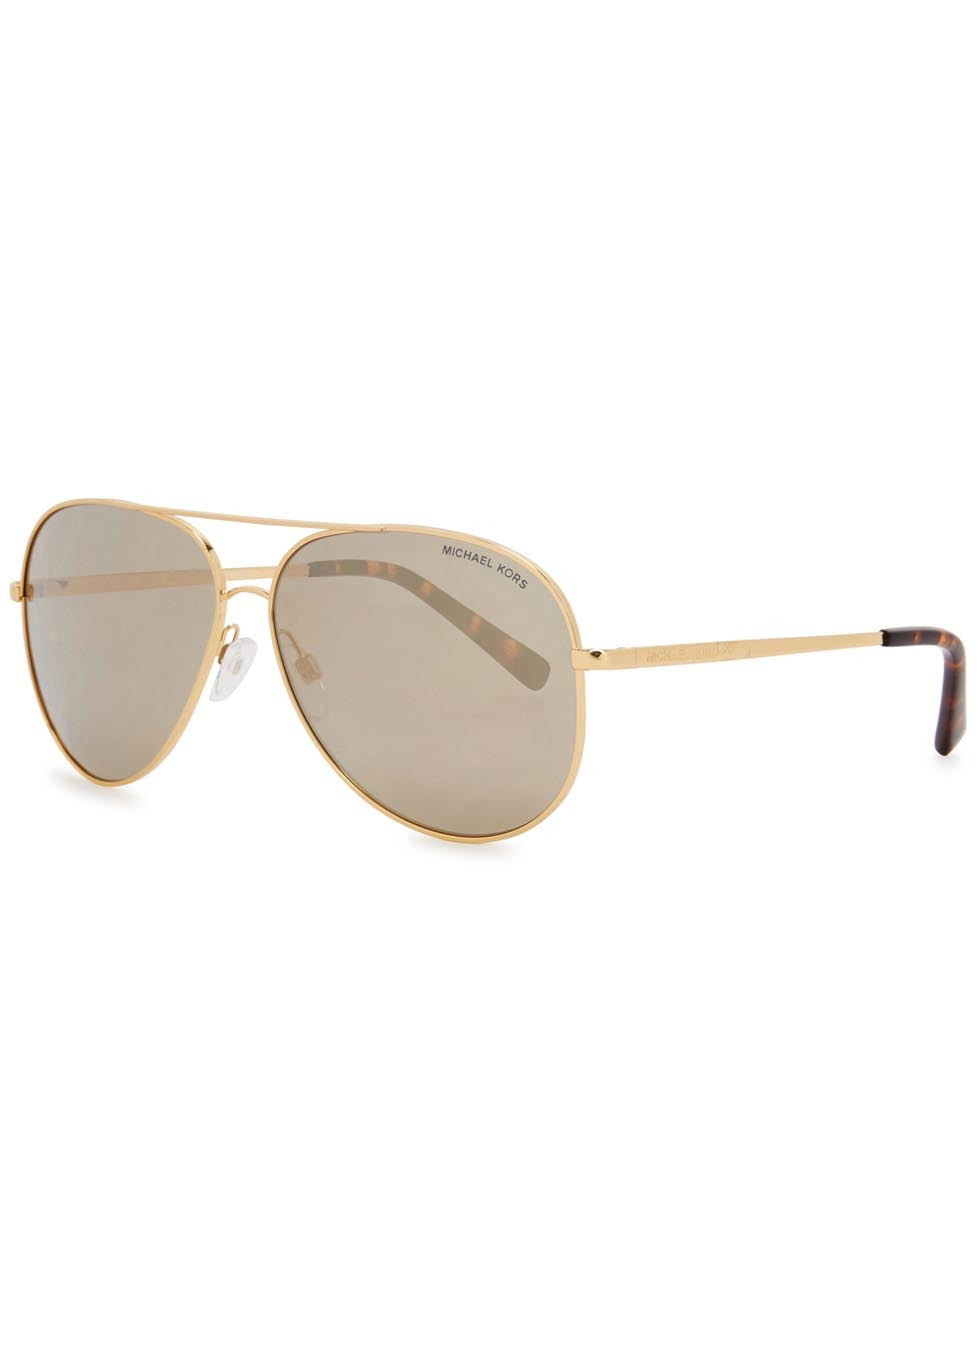 Kendall I Aviator Style Sunglasses - predominant colour: gold; occasions: casual, holiday; style: aviator; size: standard; material: chain/metal; pattern: plain; finish: metallic; season: s/s 2016; wardrobe: basic